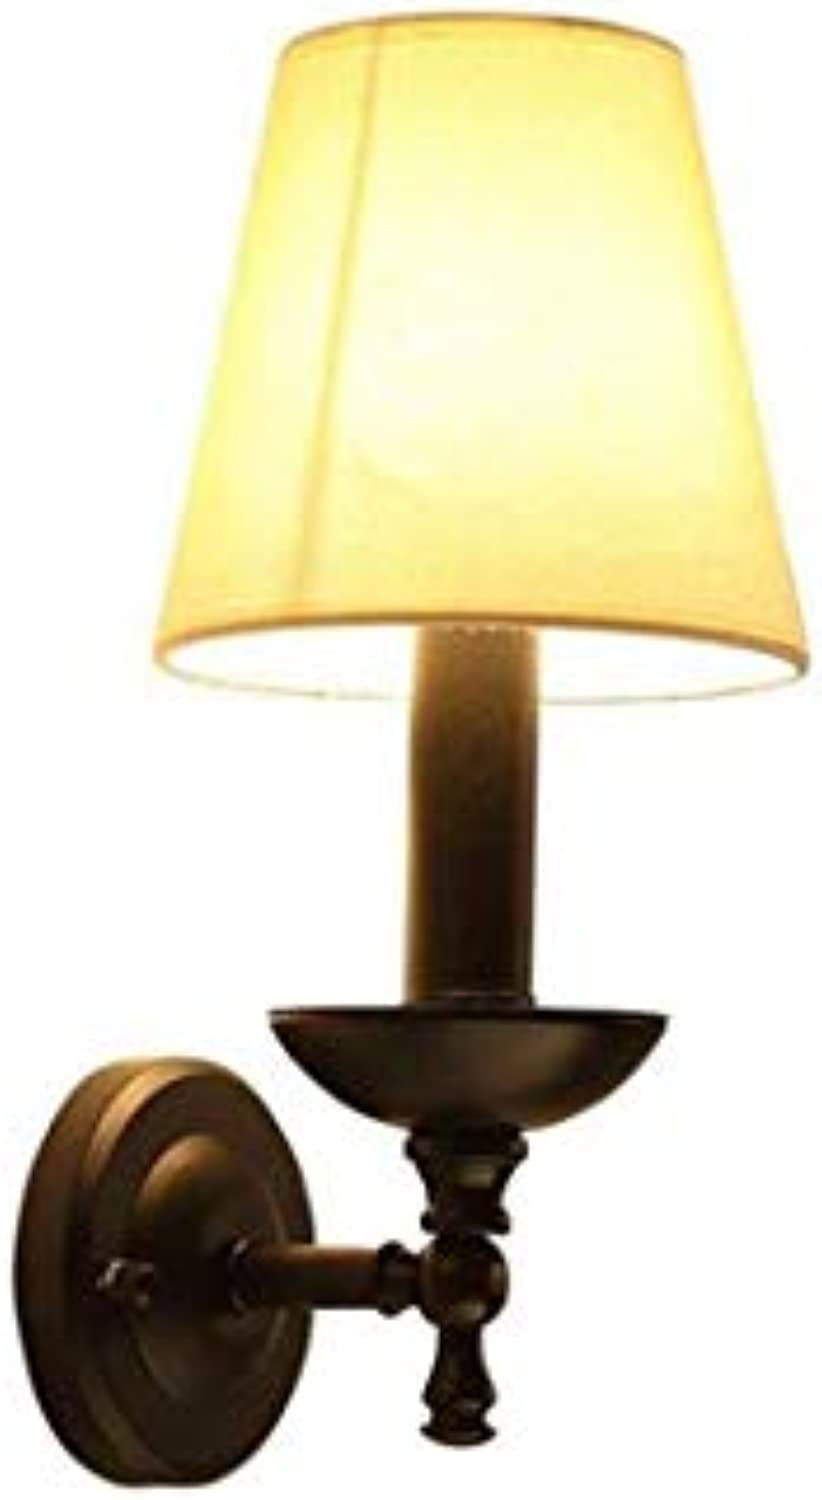 Led Wandleuchte Kronleuchterled Wall Light Chandelierwall Lighting In American Style Lounge The Bedroom Night Table Lamp